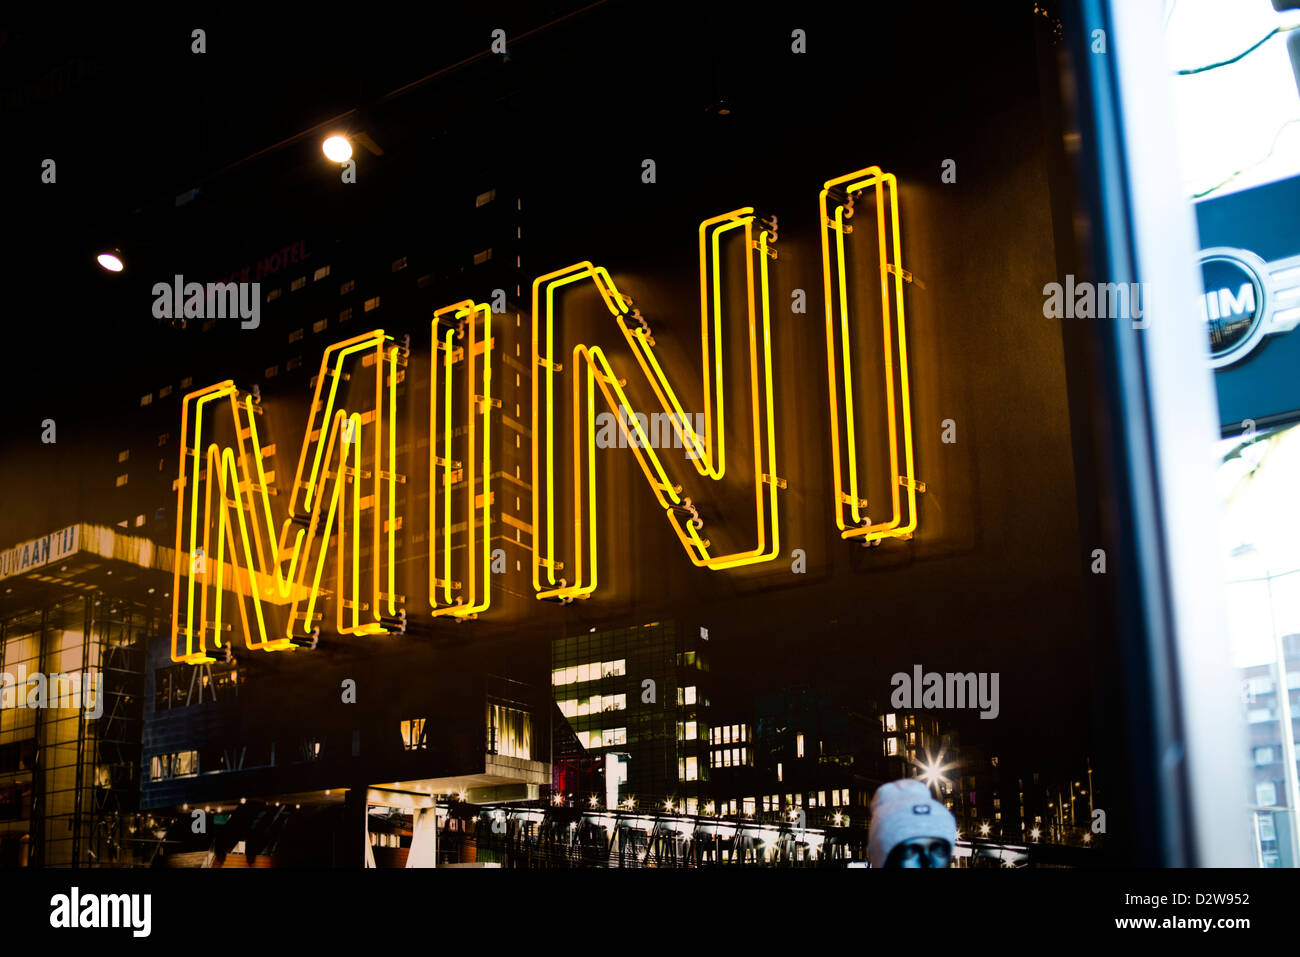 A MINI neon sign at the MINI shop in Leidseplein Amsterdam - Stock Image